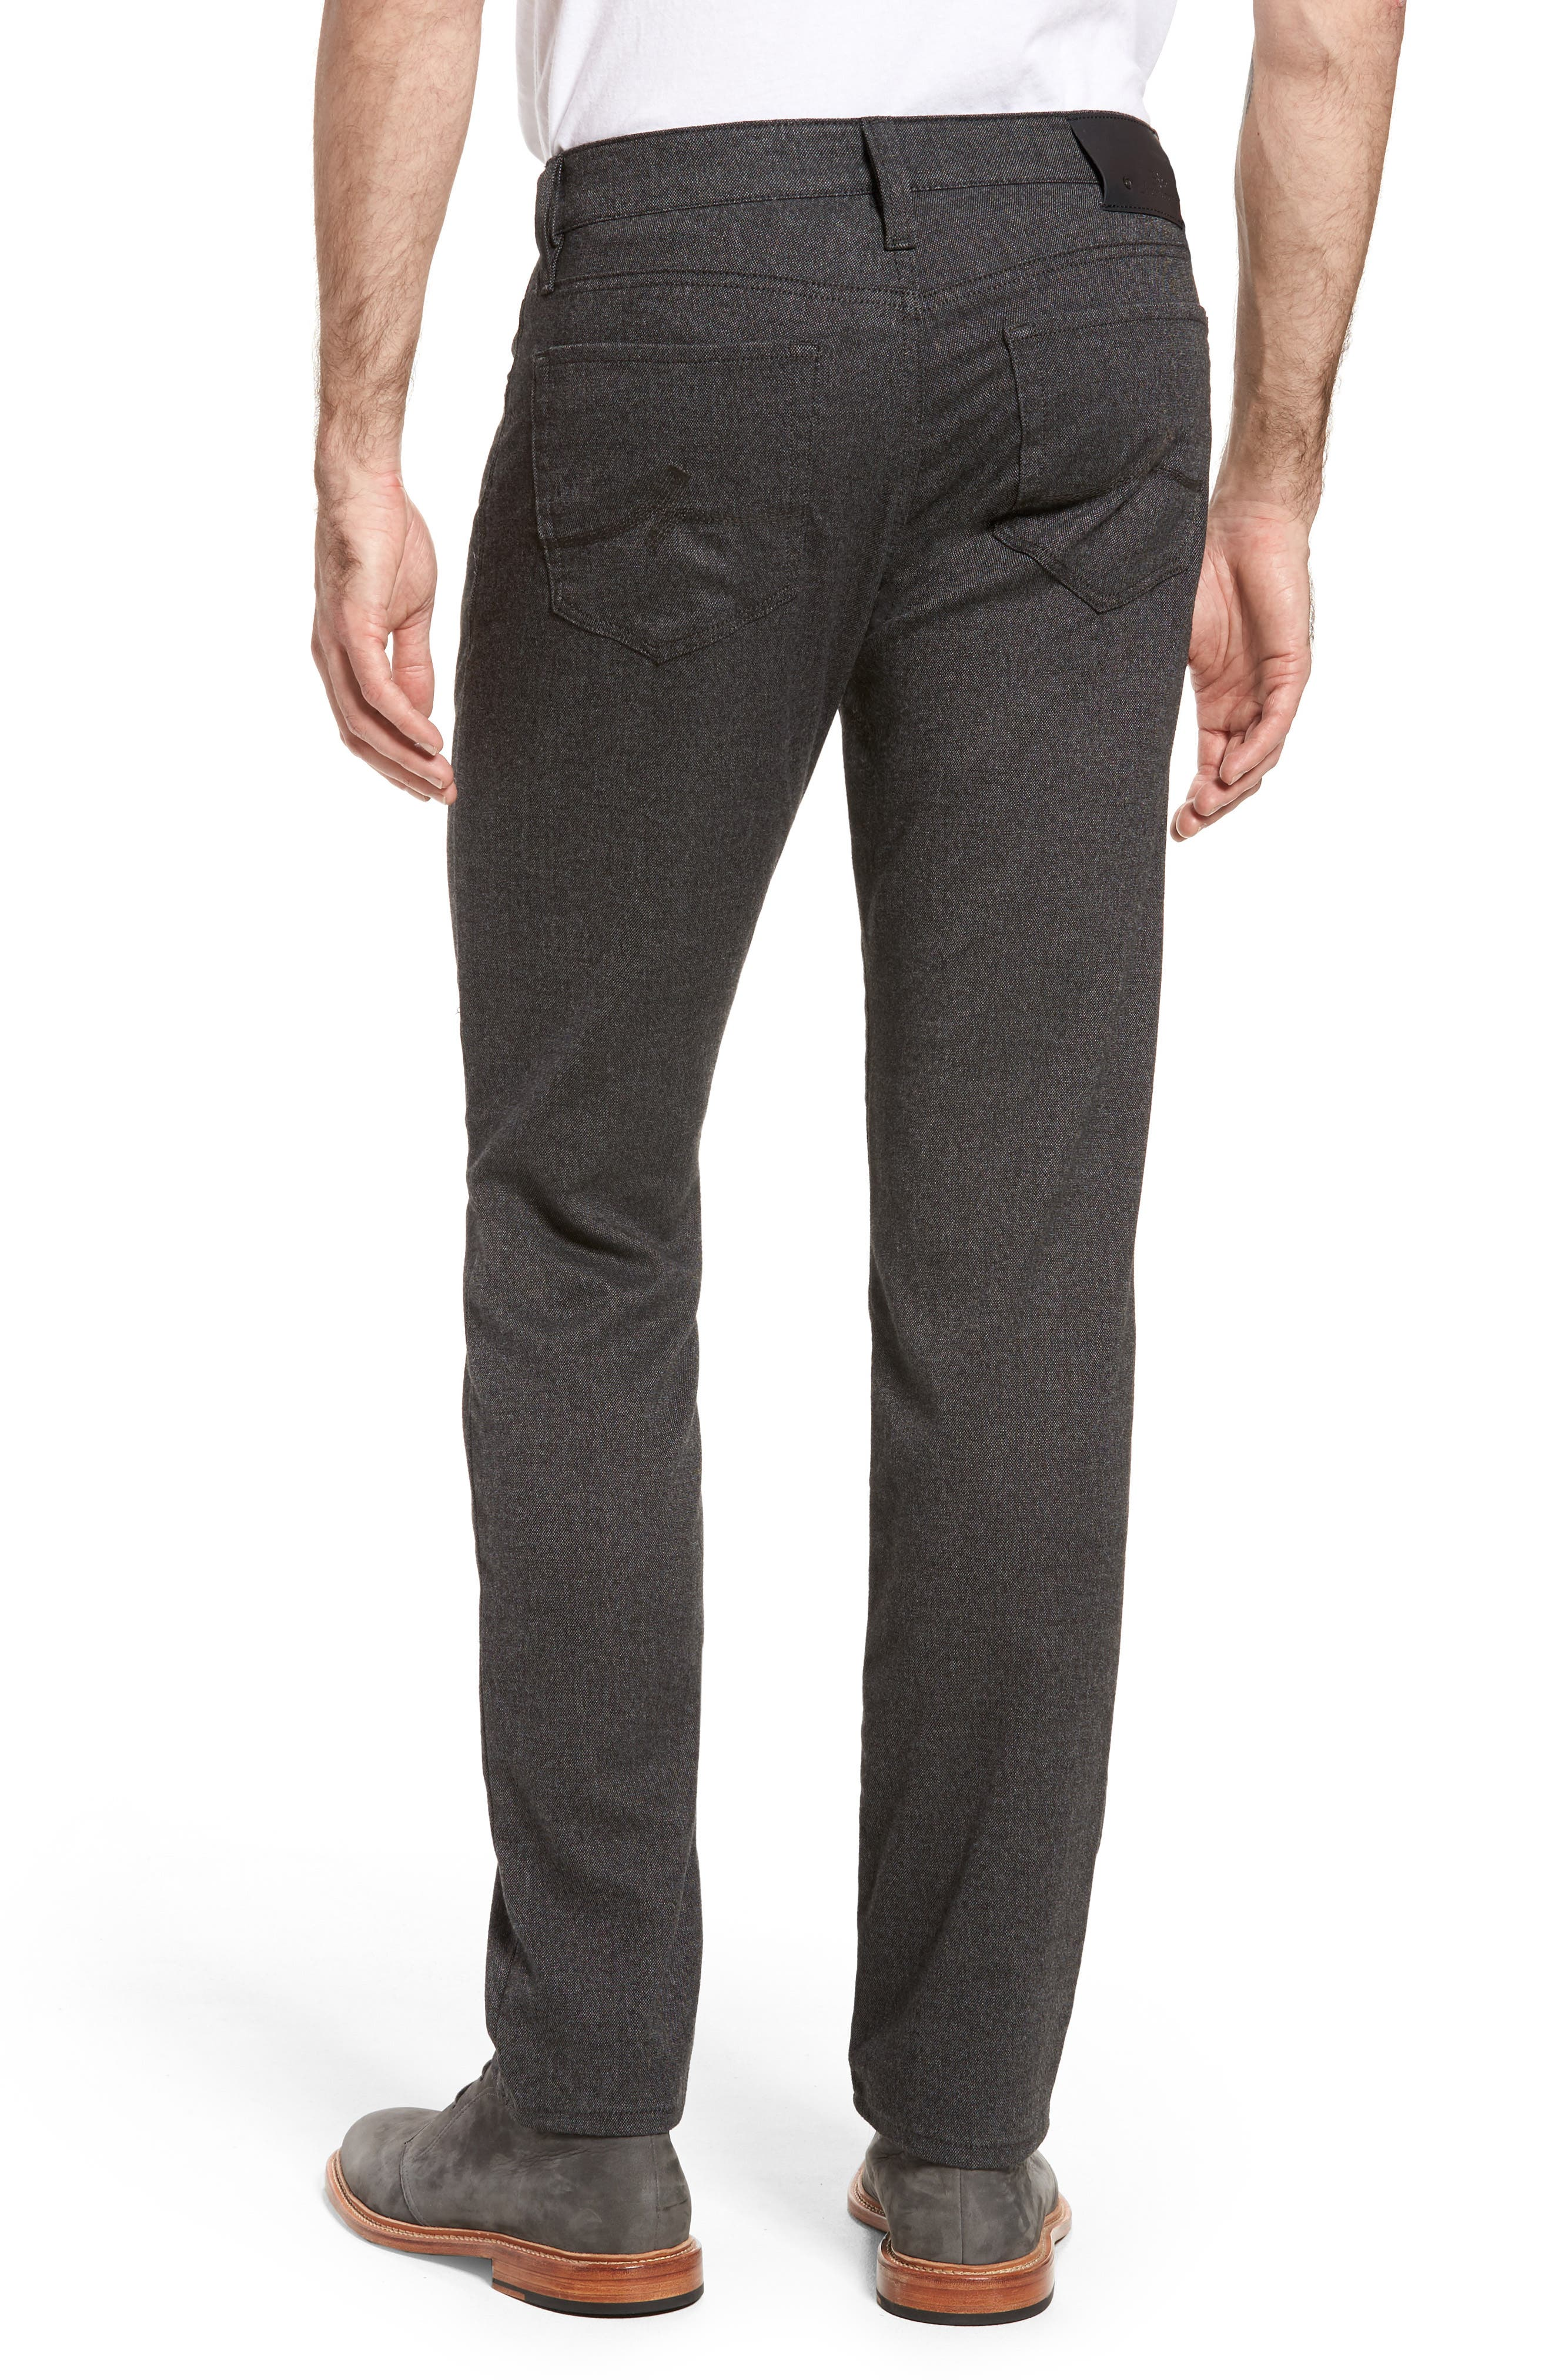 Courage Straight Leg Tweed Pants,                             Alternate thumbnail 2, color,                             Grey Feather Tweed